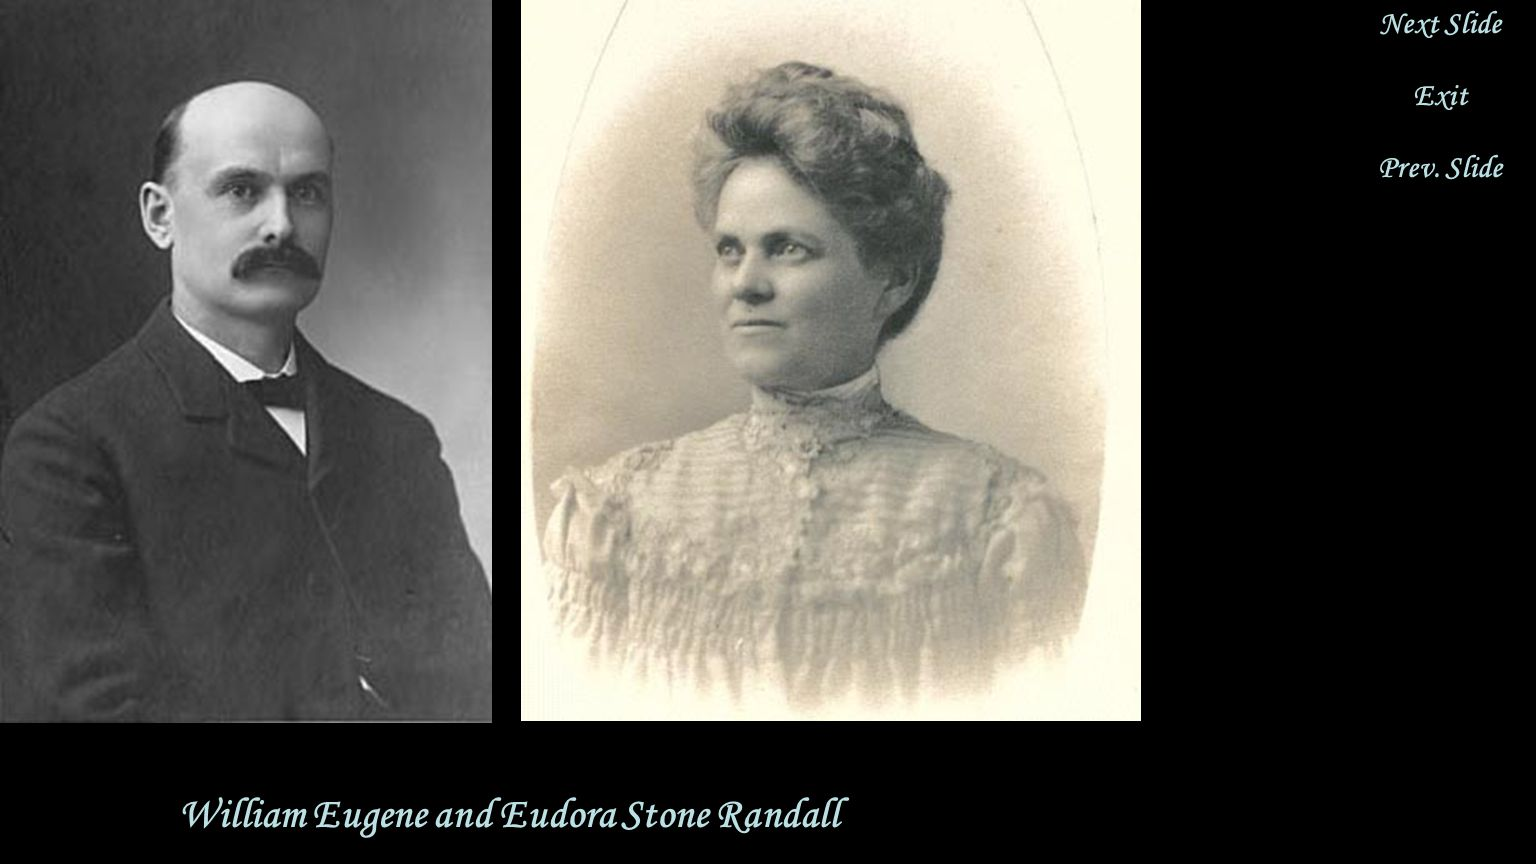 William Eugene and Eudora Stone Randall on Their Wedding Day Eugene Wilson Randall was born in Winona, MN.